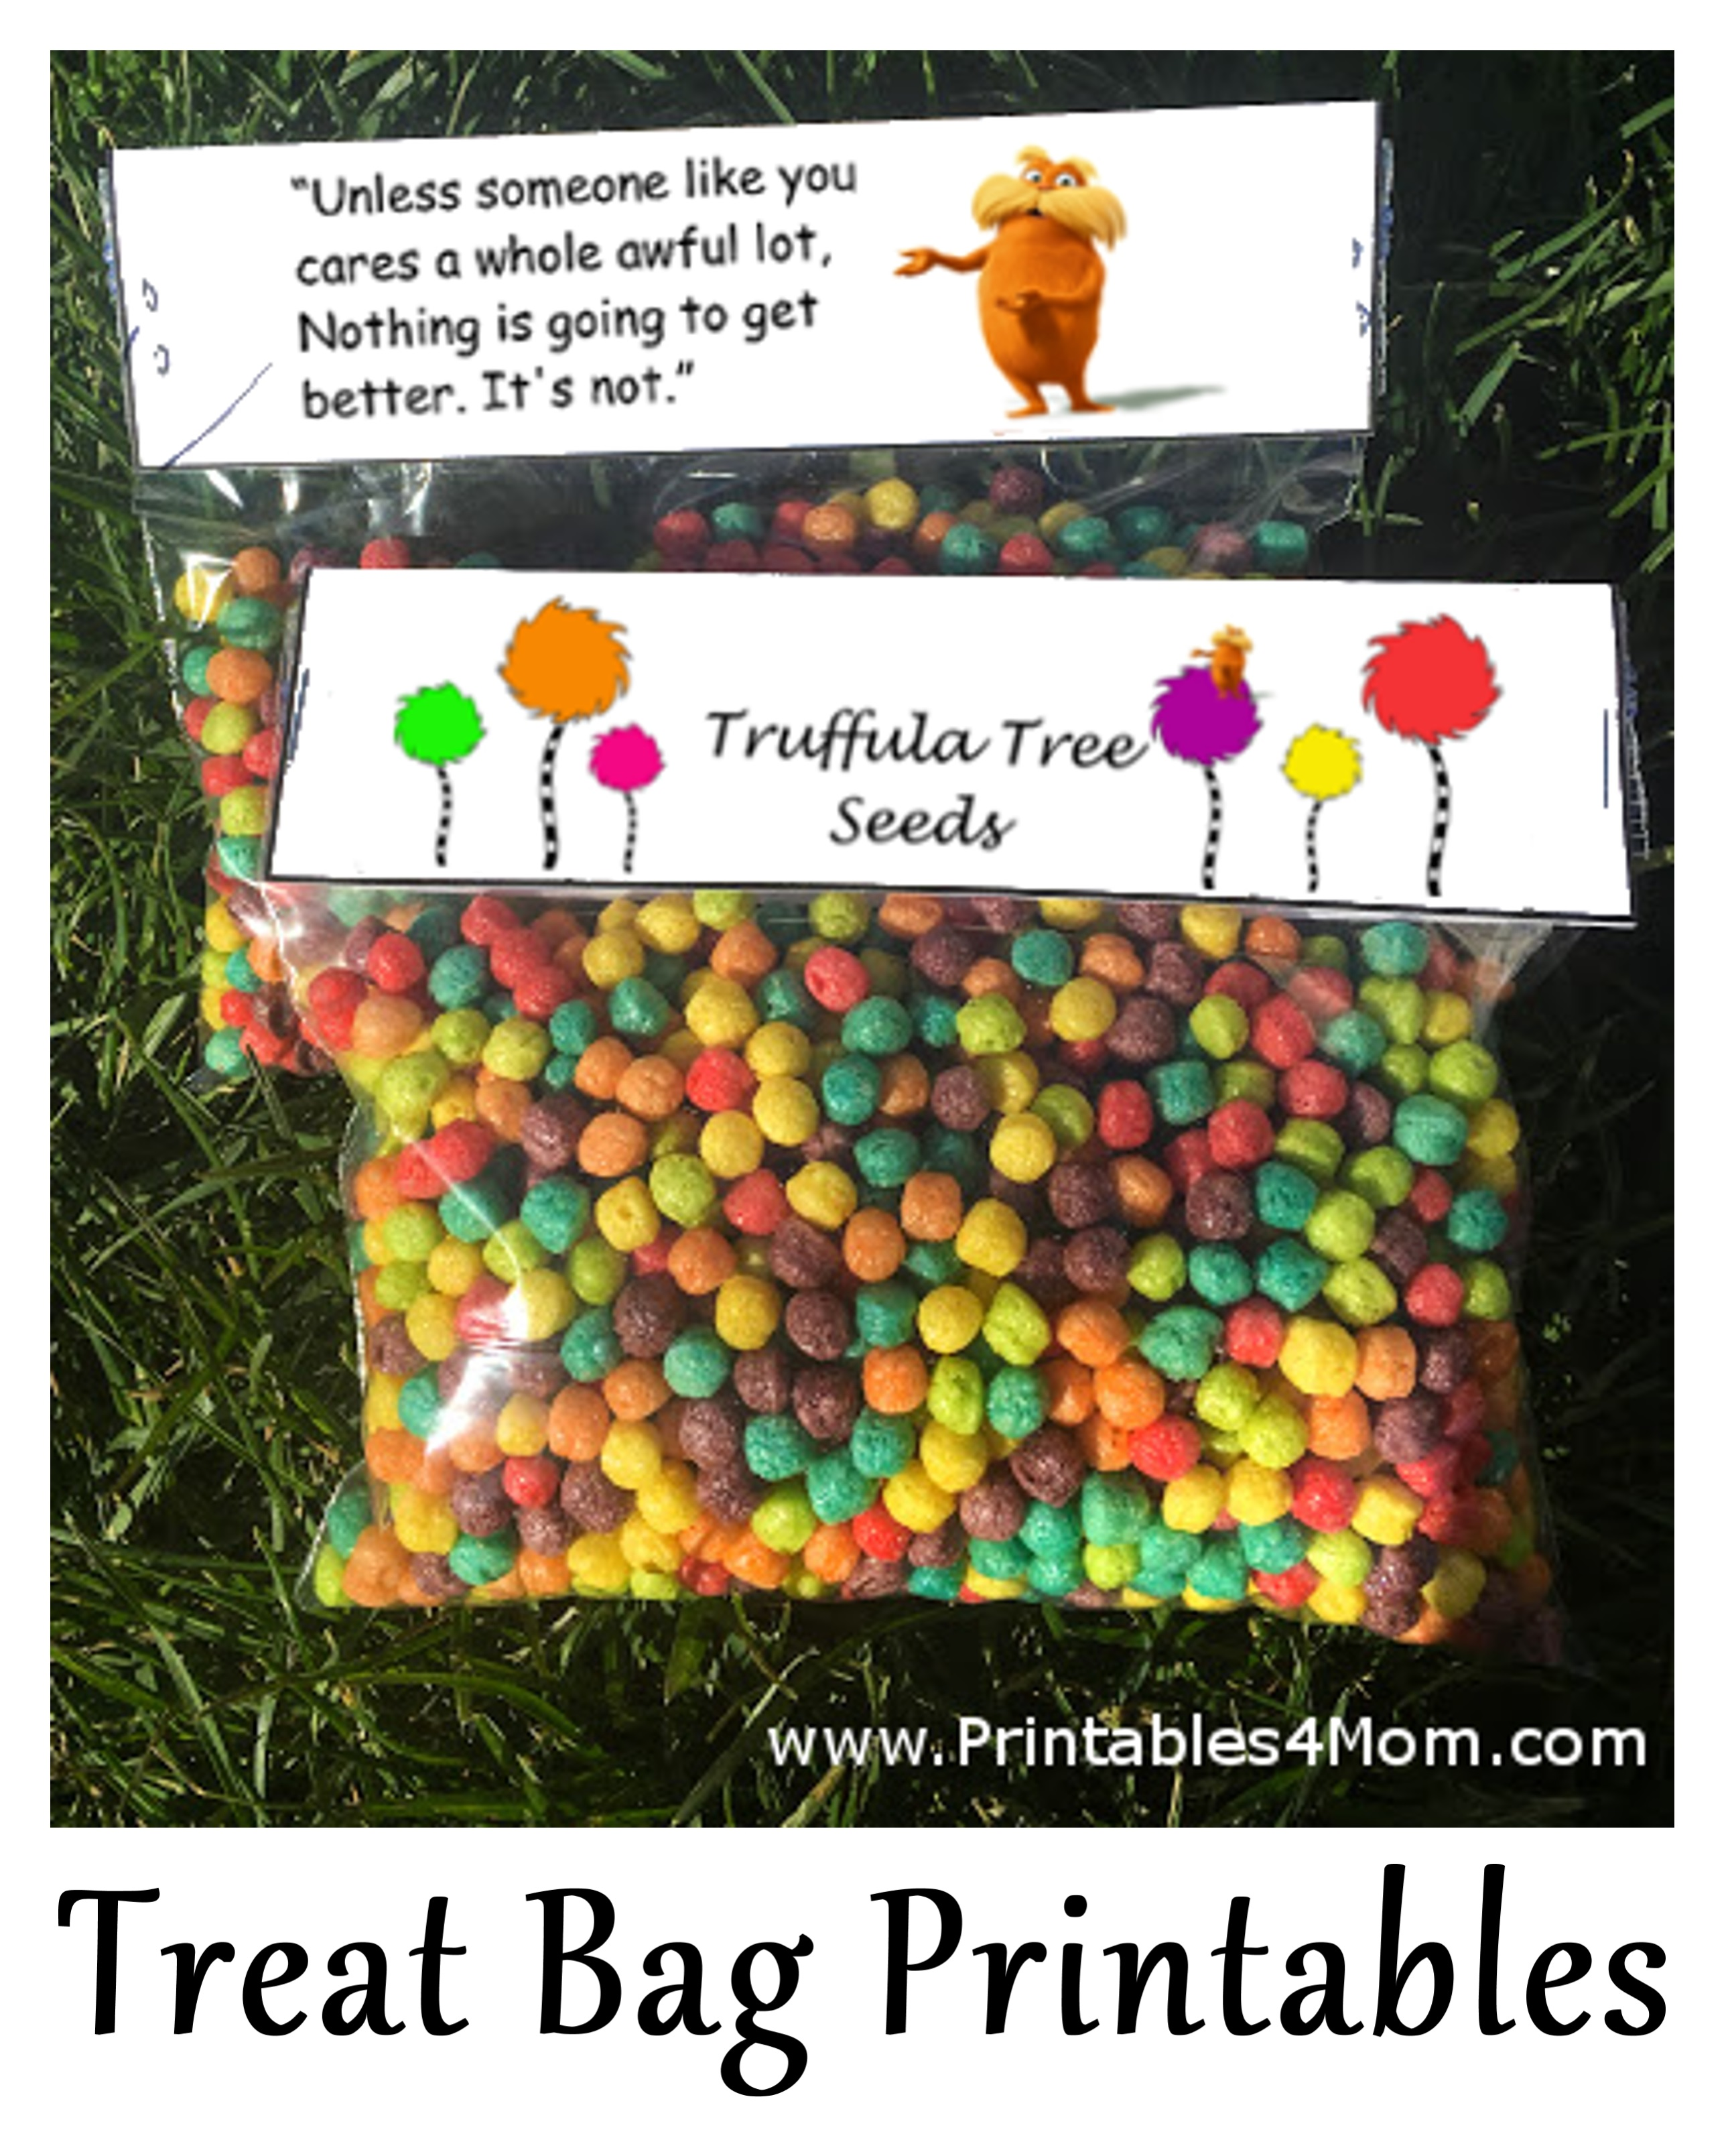 Truffula Tree Seeds Free Topper Perfect for Earth Day or Dr. Suess's Birthday!